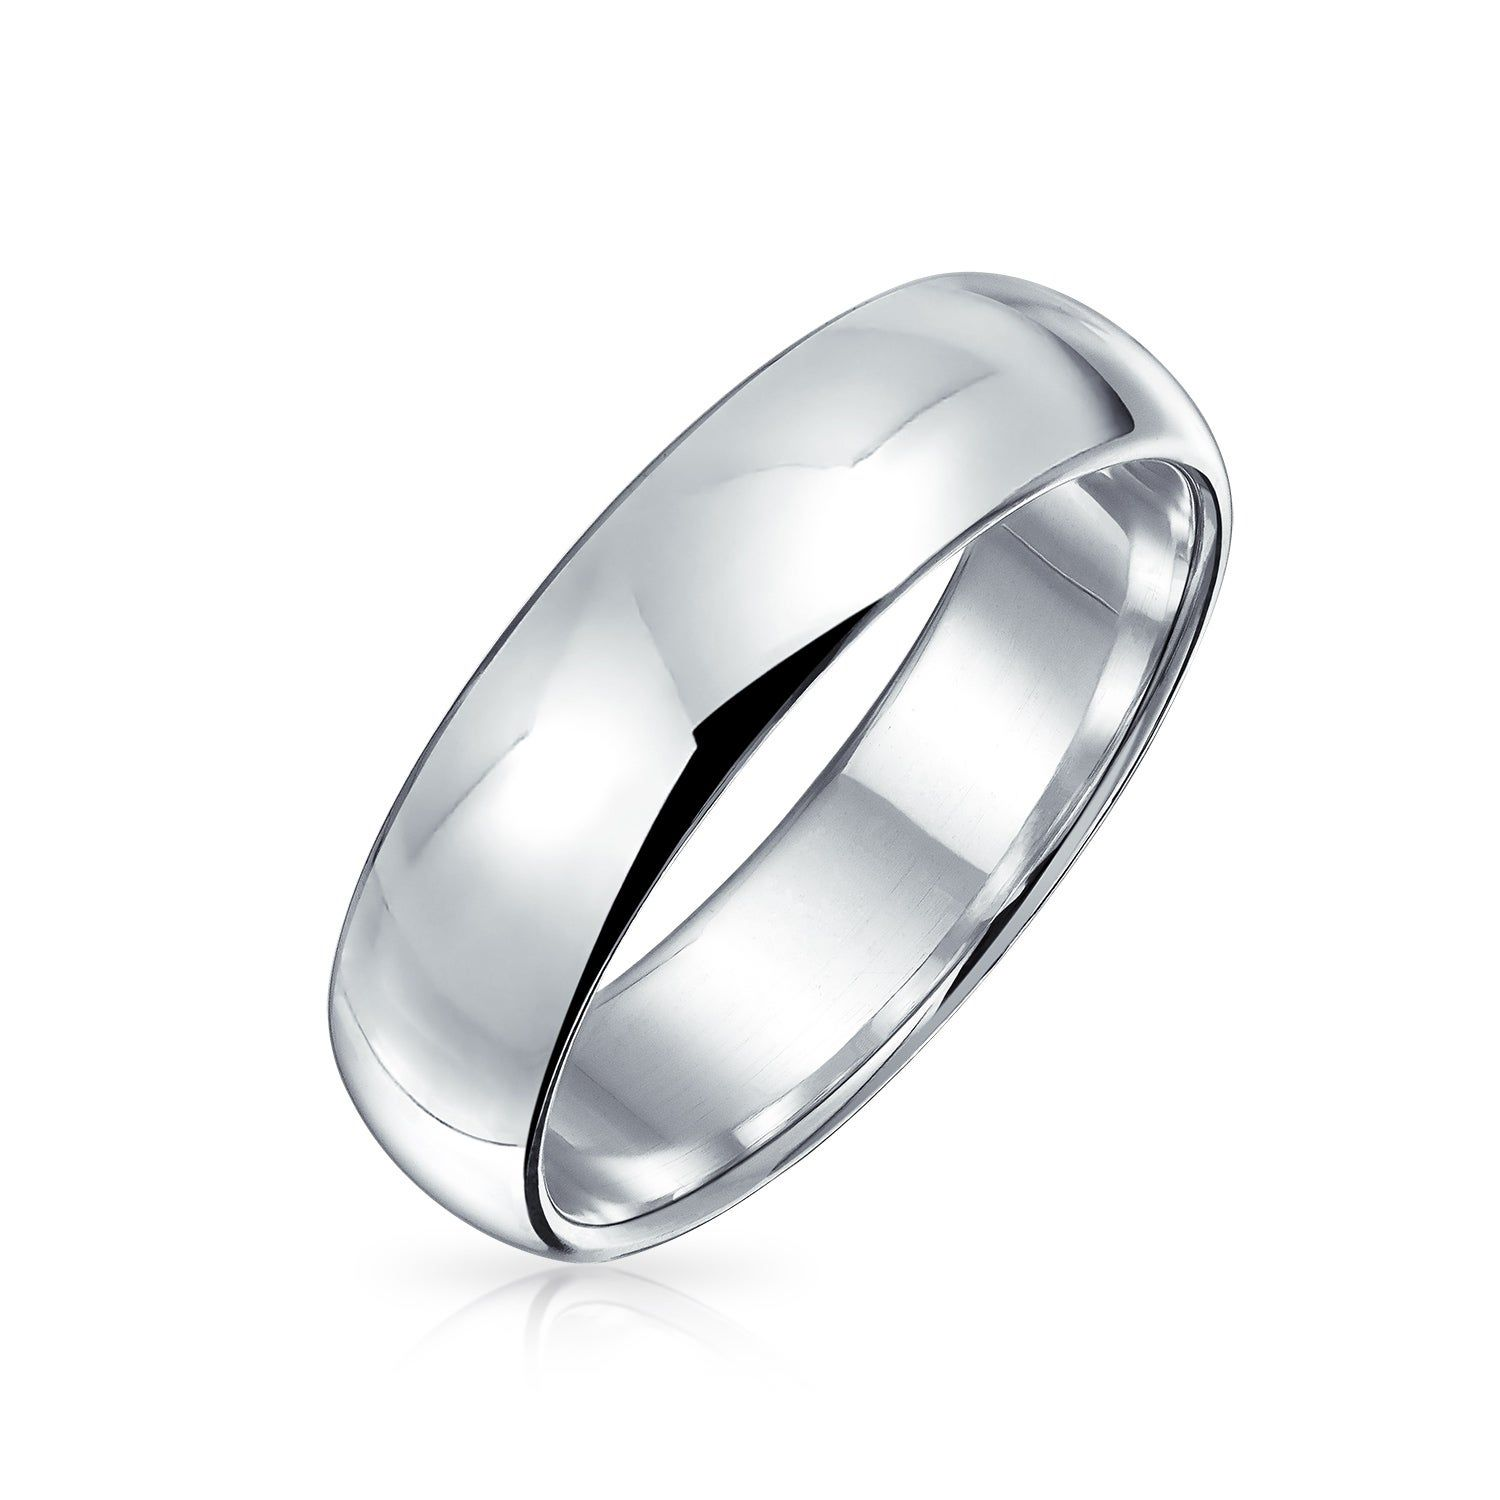 Mens Sterling Silver Wedding Ring In 2020 Silver Wedding Bands Sterling Silver Wedding Band Mens Wedding Bands